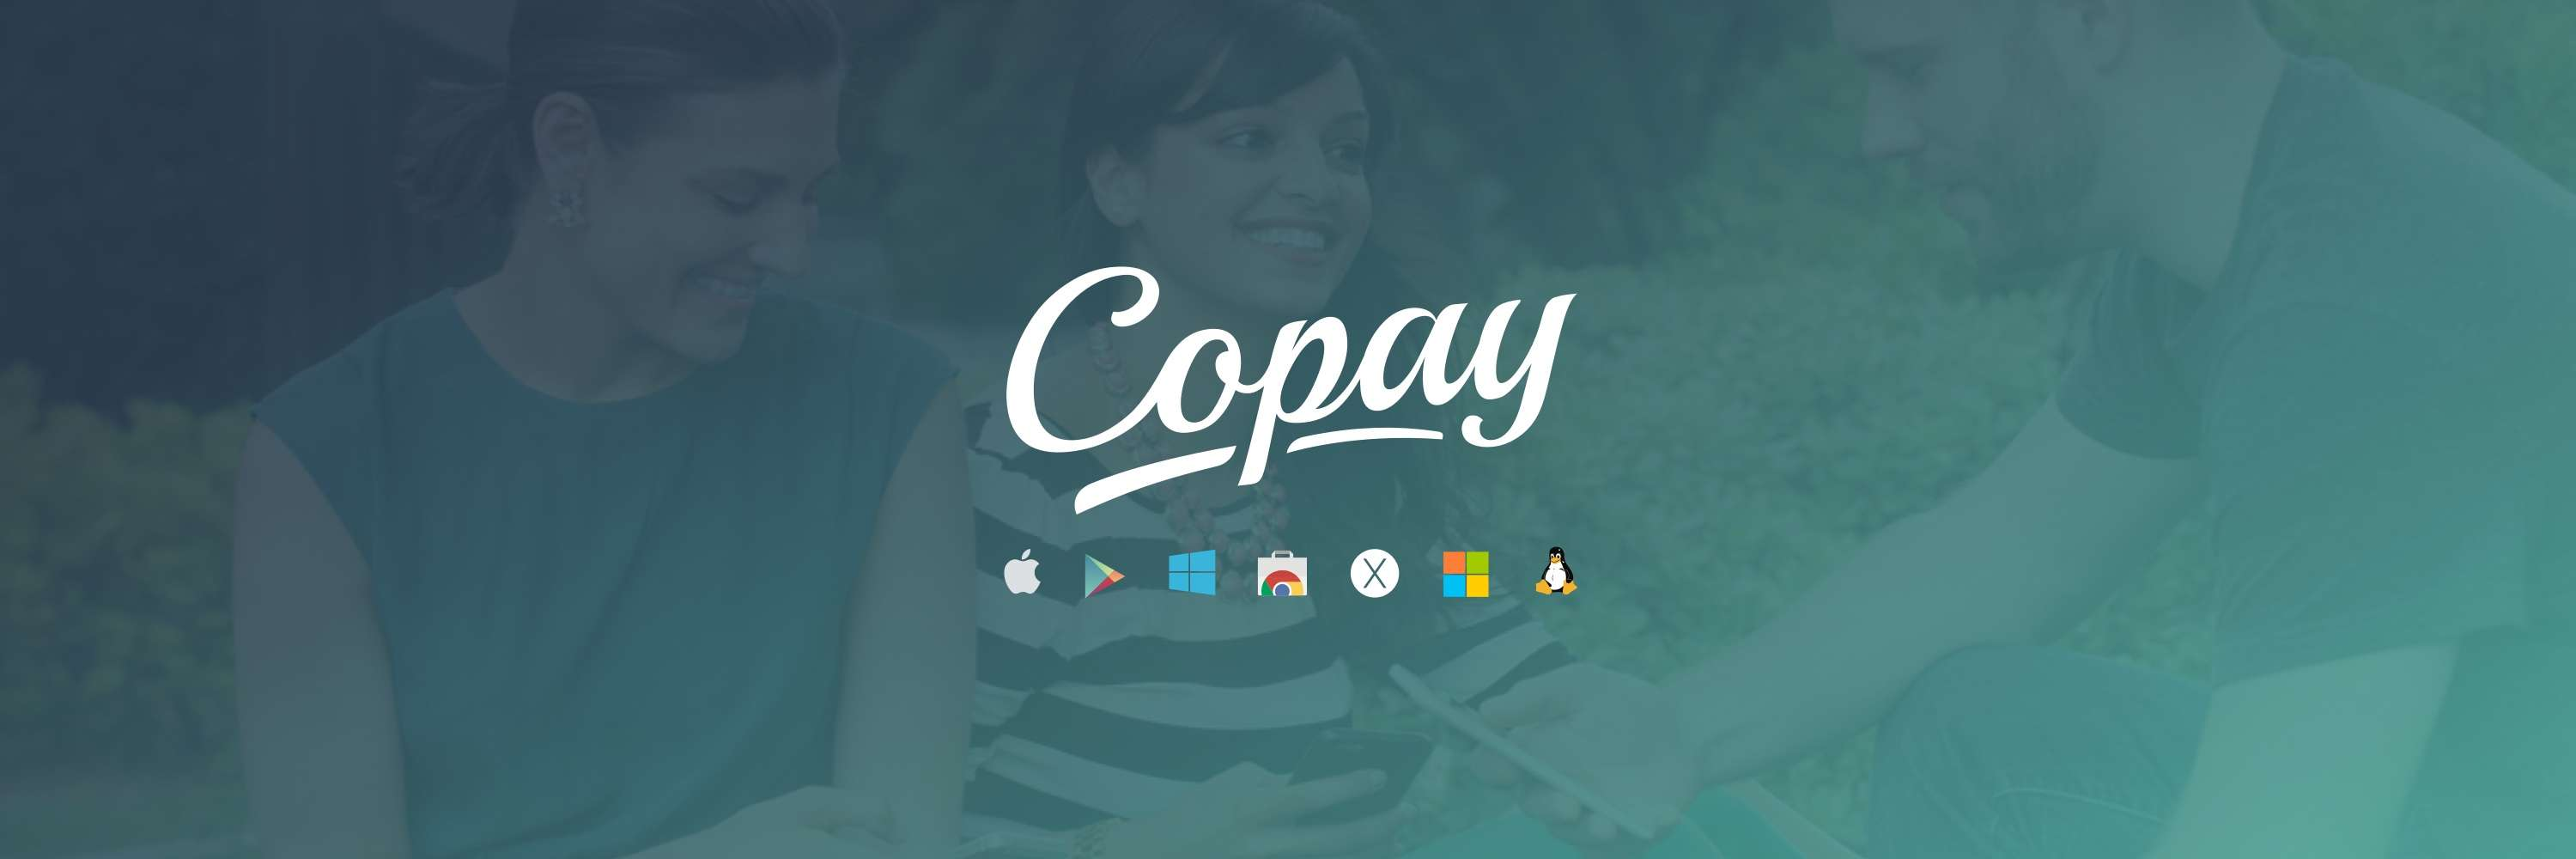 Copay review the interface